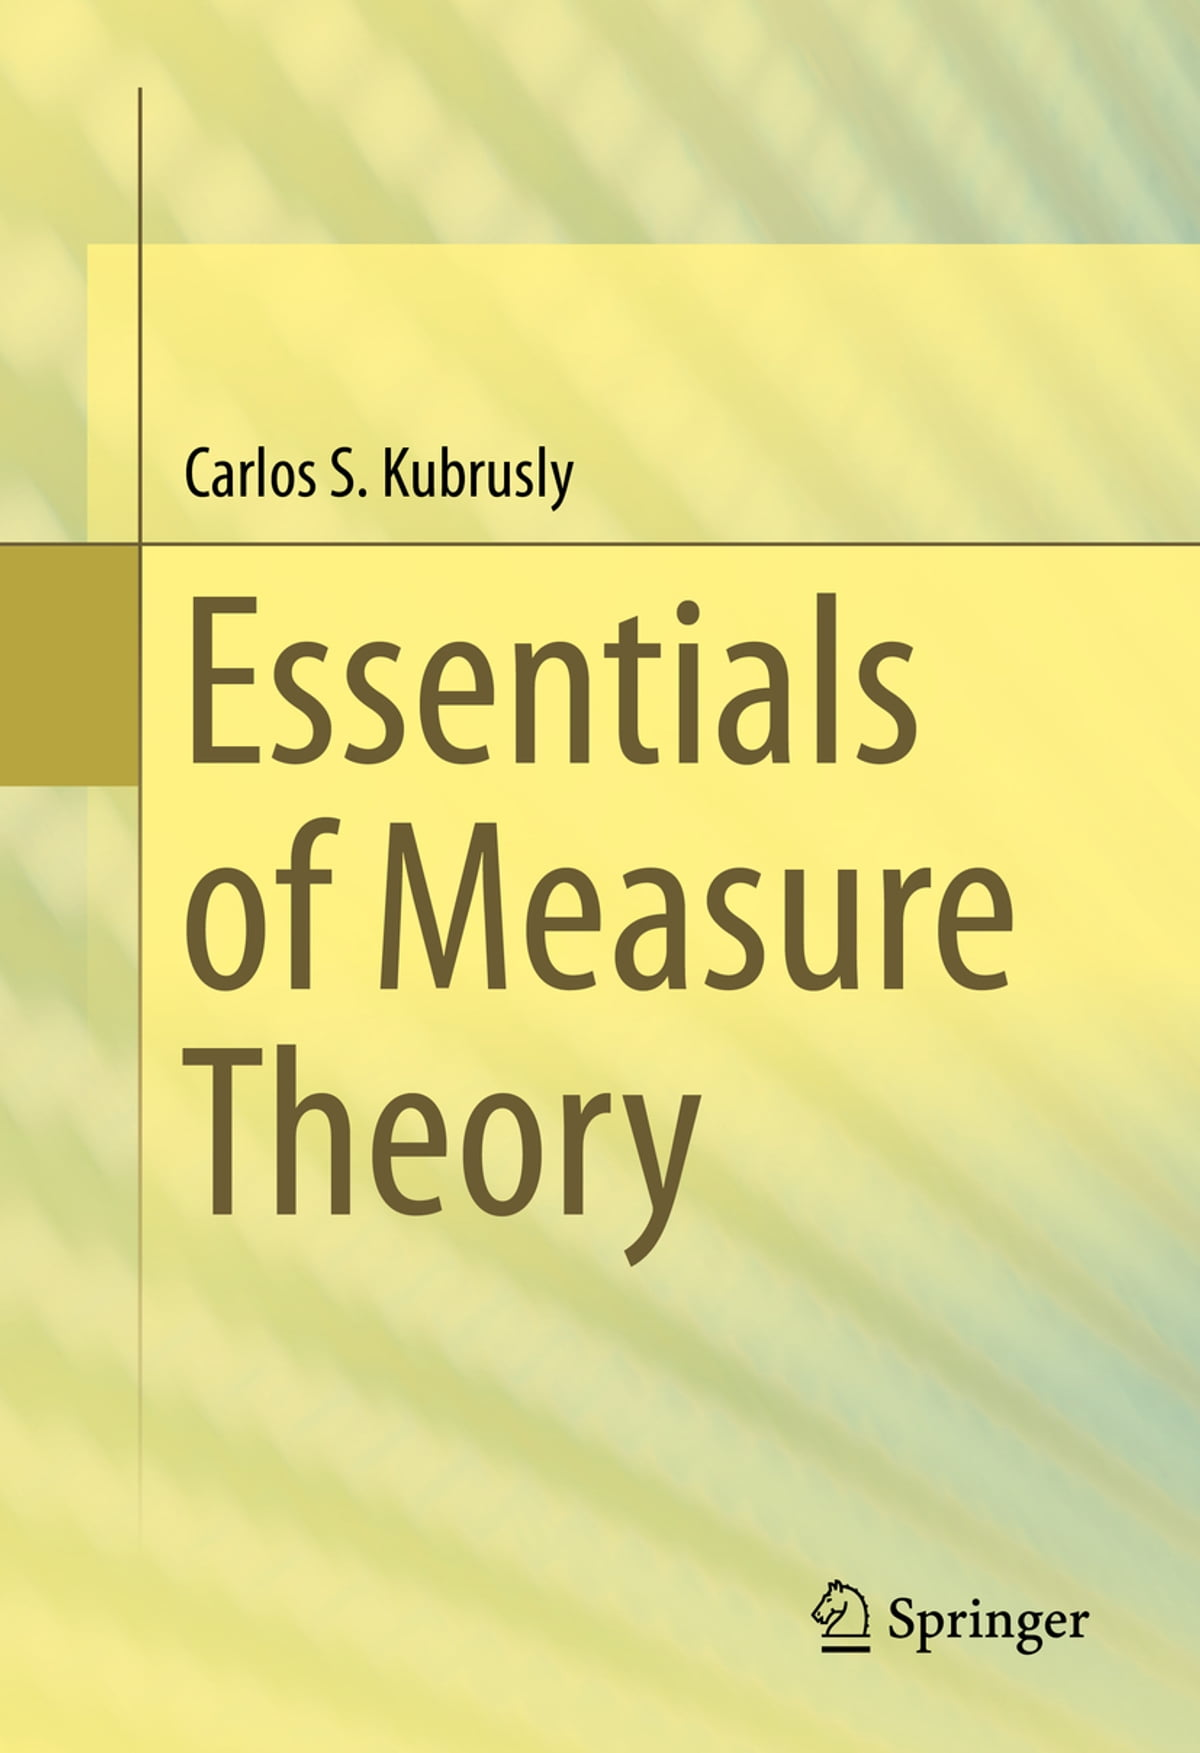 Essentials of measure theory ebook by carlos s kubrusly essentials of measure theory ebook by carlos s kubrusly 9783319225067 rakuten kobo fandeluxe Image collections